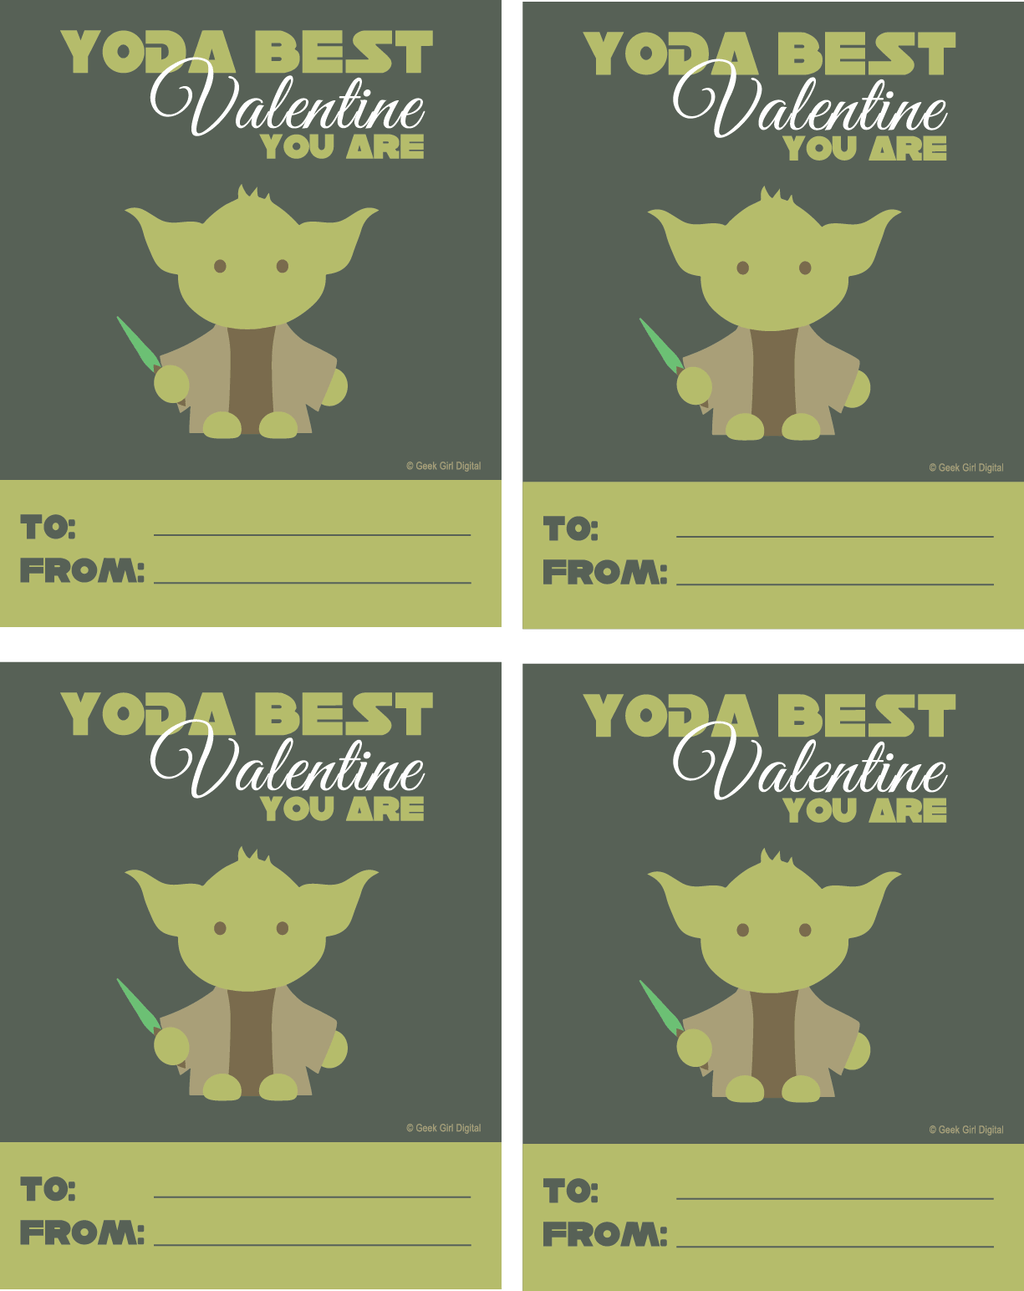 photo about Yoda Printable identify No cost Yoda Valentine Printable Whisky + Solar